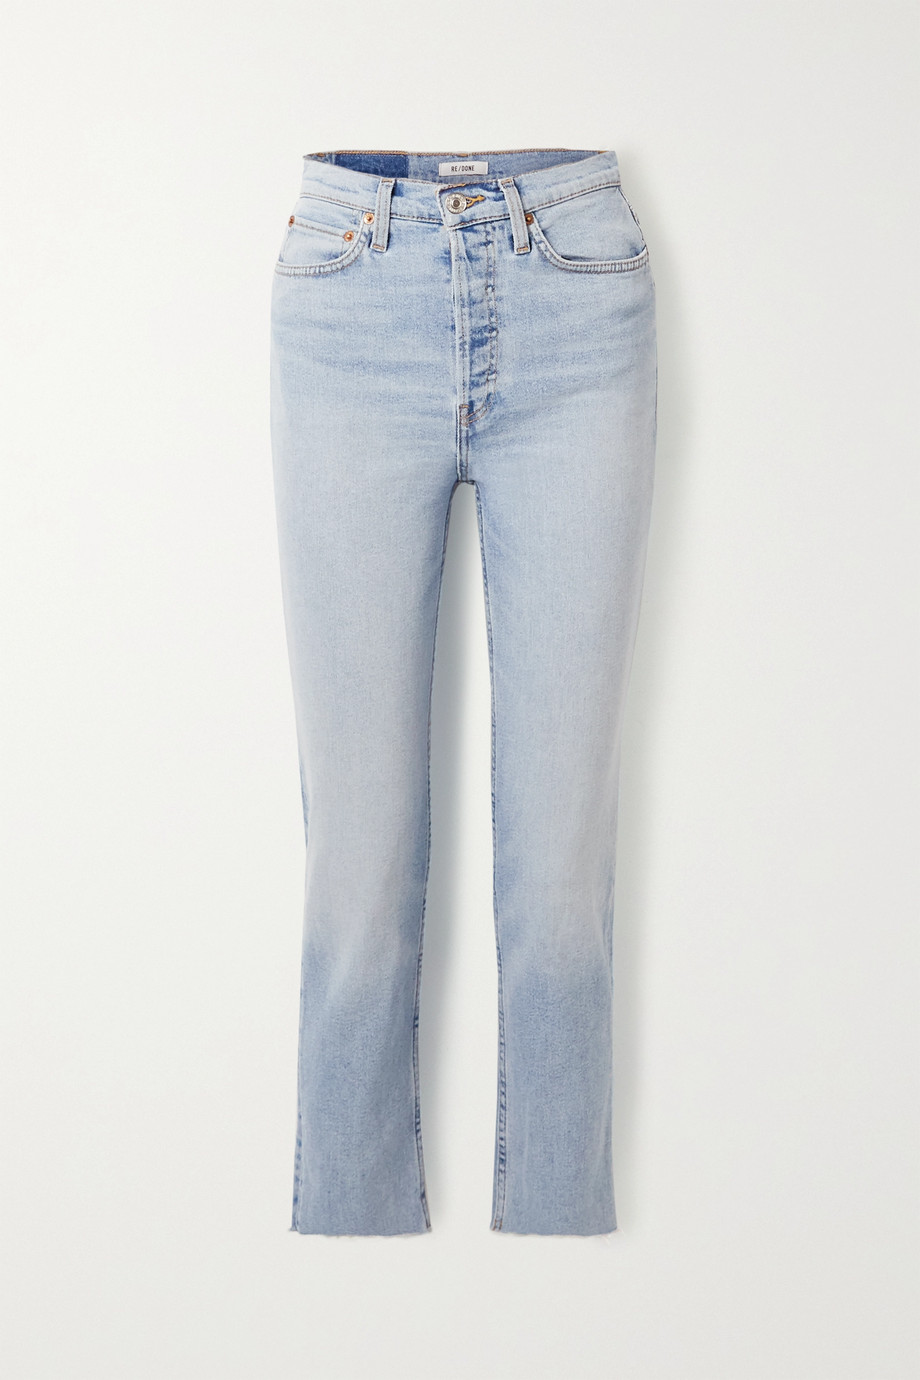 RE/DONE + Caro Daur cropped frayed high-rise slim-leg jeans